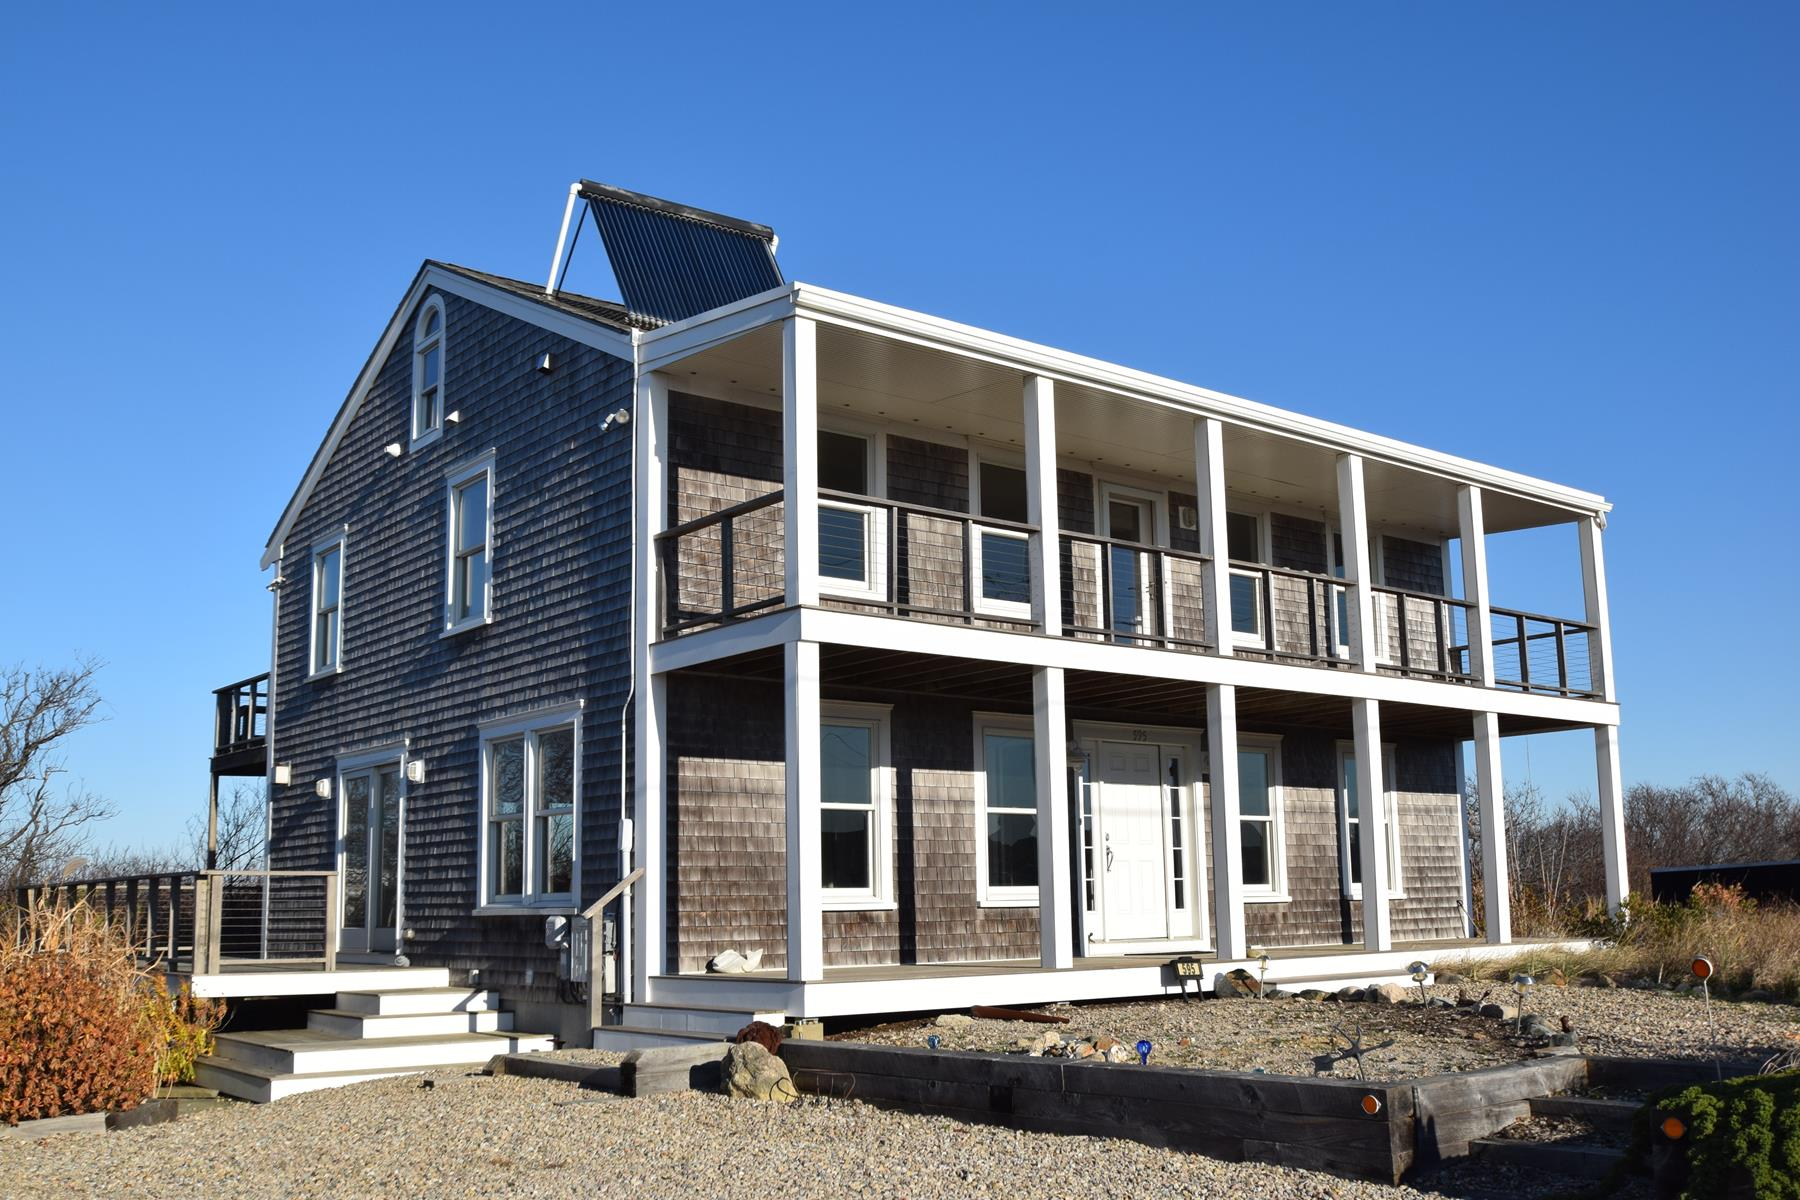 Single Family Home for Sale at Beach Point 595 Shore Road Truro, Massachusetts 02666 United States